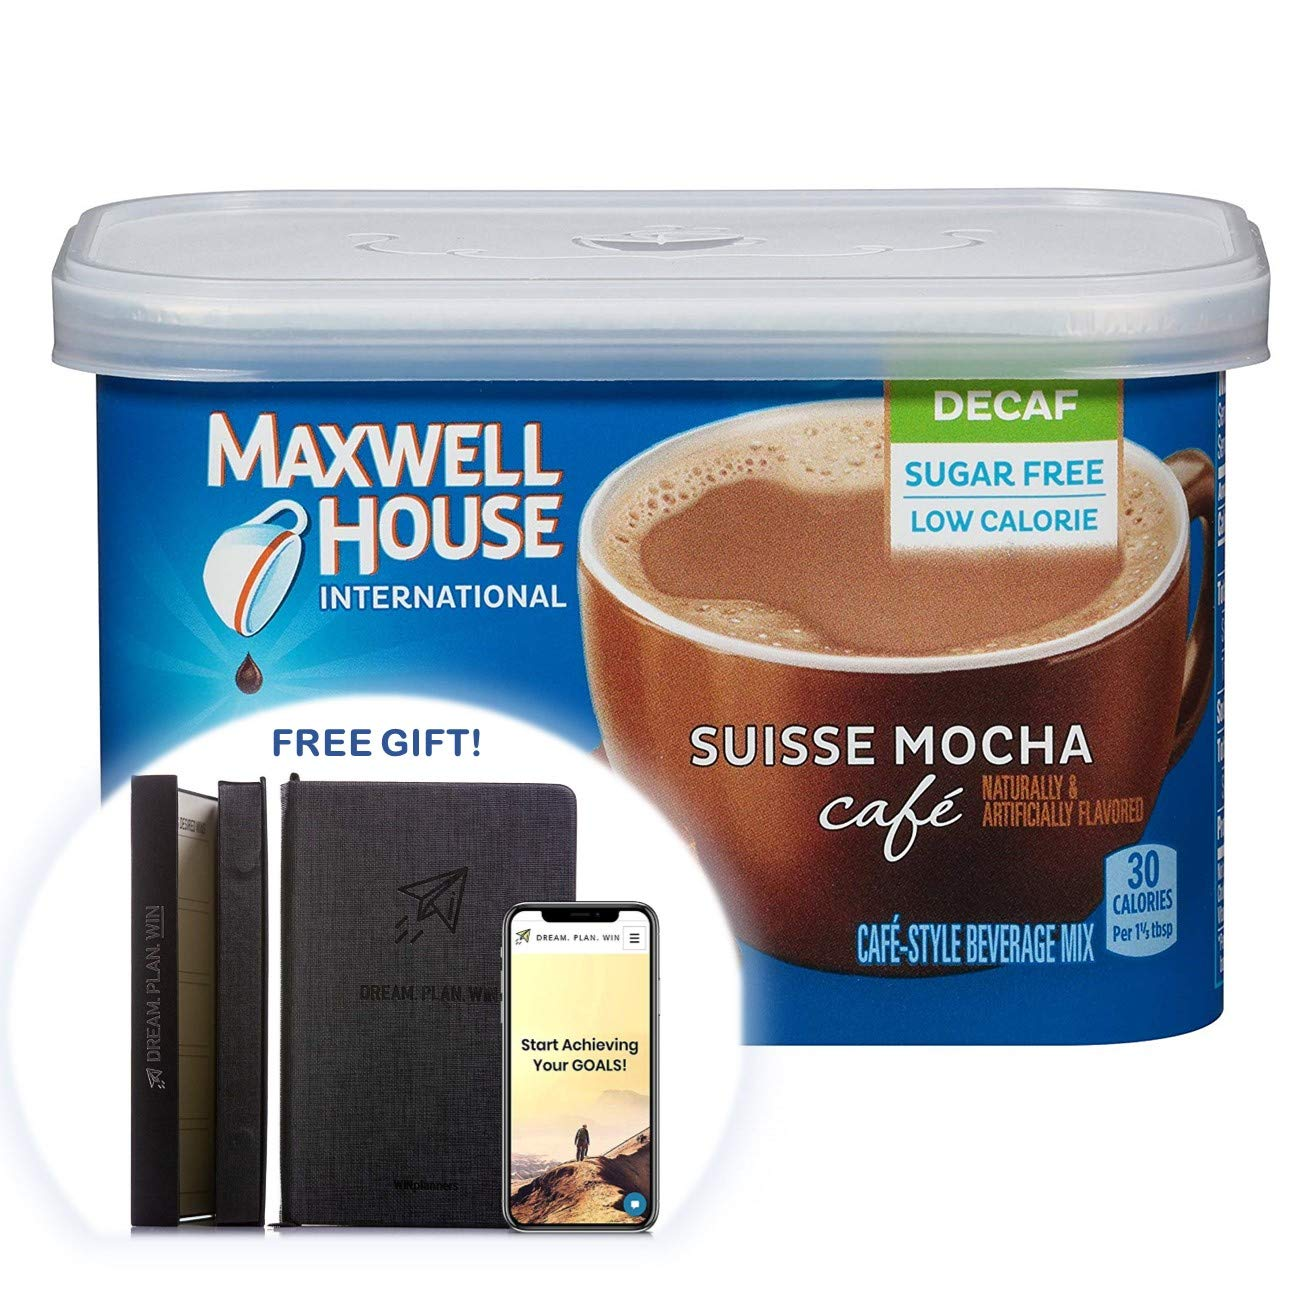 Maxwell House International Sugar-Free Decaf Suisse Mocha Beverage Mix, 4 oz Tub (Pack of 11) + FREE GIFT - PRODUCTIVITY PLANNER - Attain Your Dreams! (11 Count)